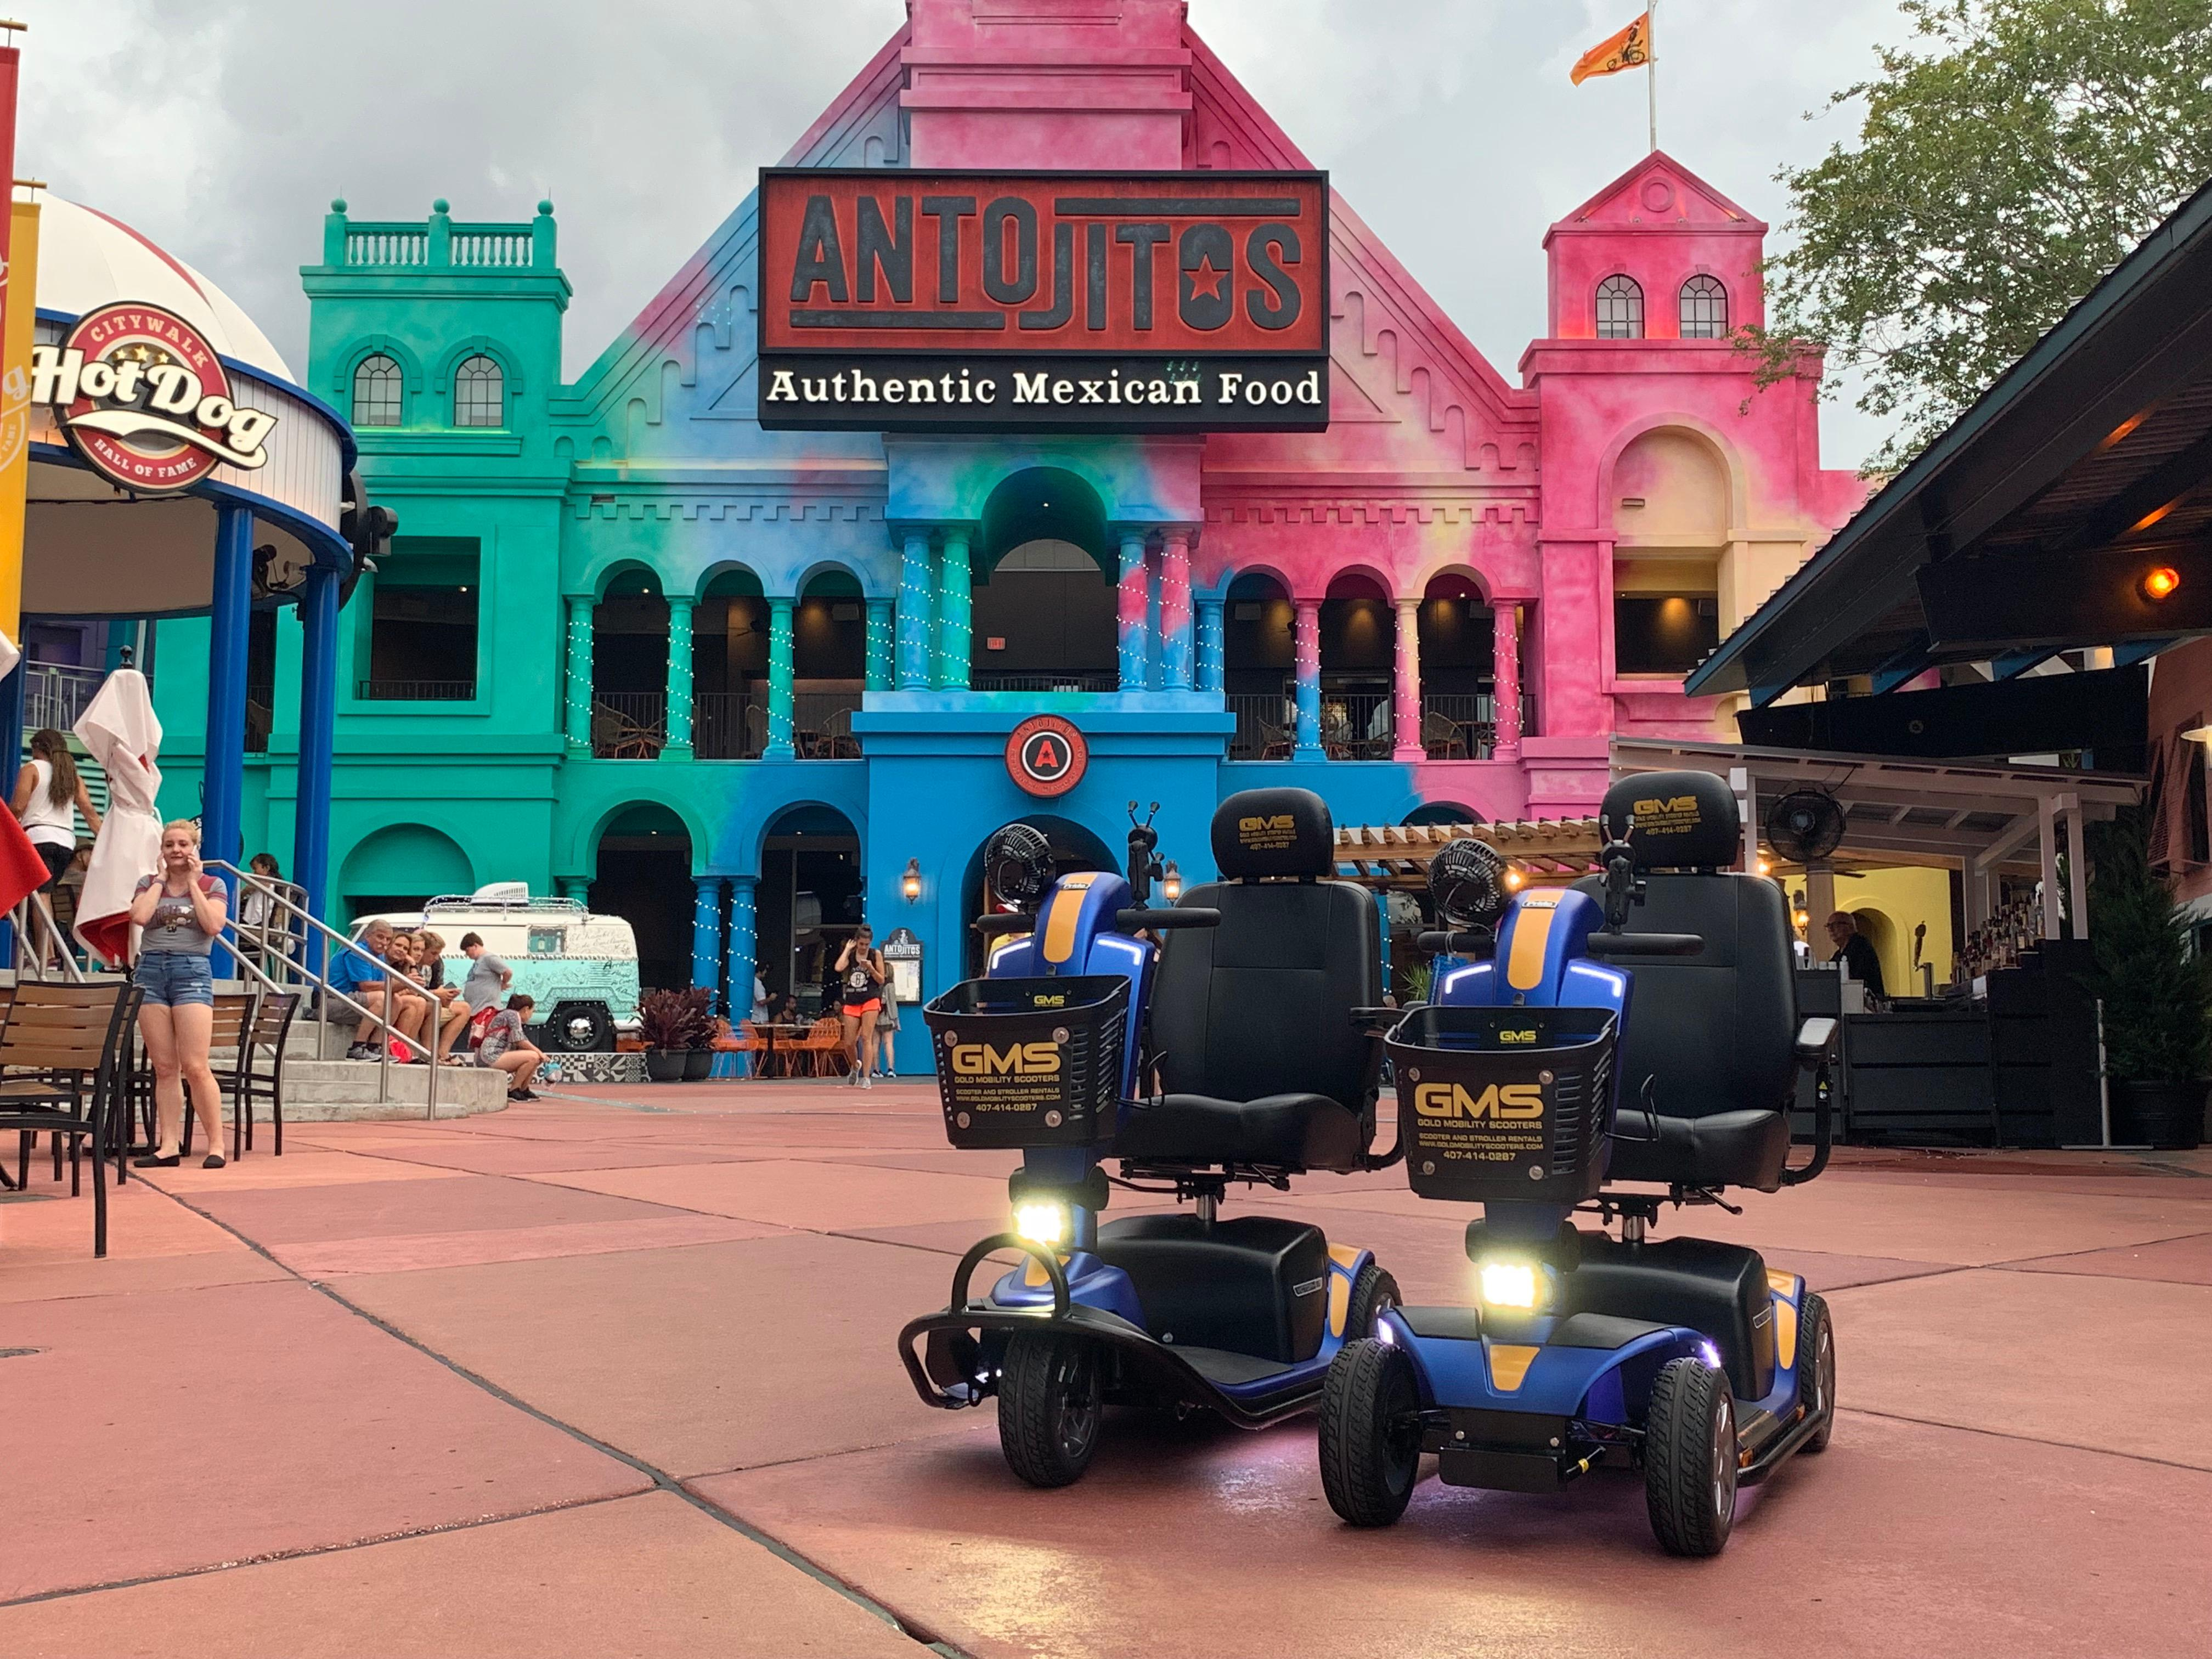 Theme park approved scooter rentals for Orlando Florida and the theme parks by Gold Mobility Scooters. We sell and rent top of the line Pride Mobility Scooters in our rent a scooter line. Theme Parks and Orlando Florida Area scooter rentals. Best rental Prices, Premium brand new scooters for rent, Free Delivery and Pickup, Free Damage Waver, Free Accessories, and Custom upgrades. 5 star rated scooter rental company. Scooter Rental info at https://goldmobilityscooters.com or Call us at 407-414-0287